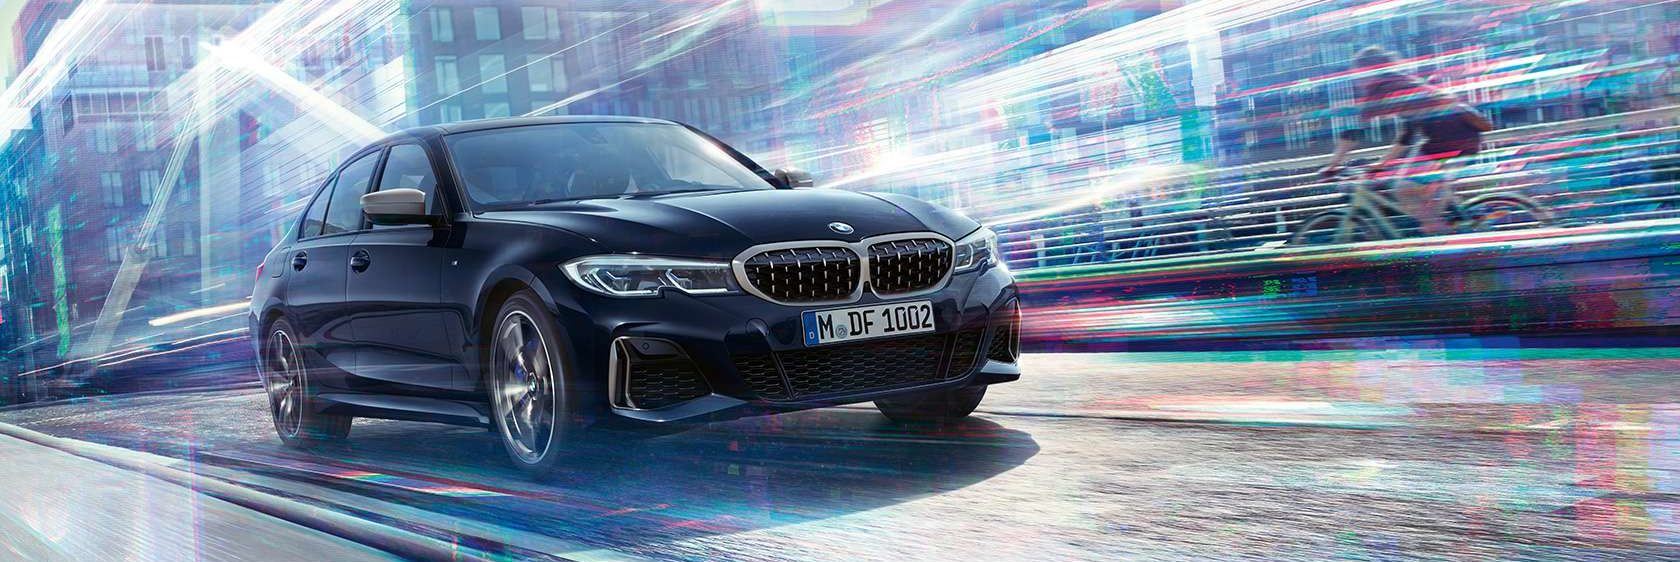 2020 BMW 3 Series sedan driving on a futuristic background